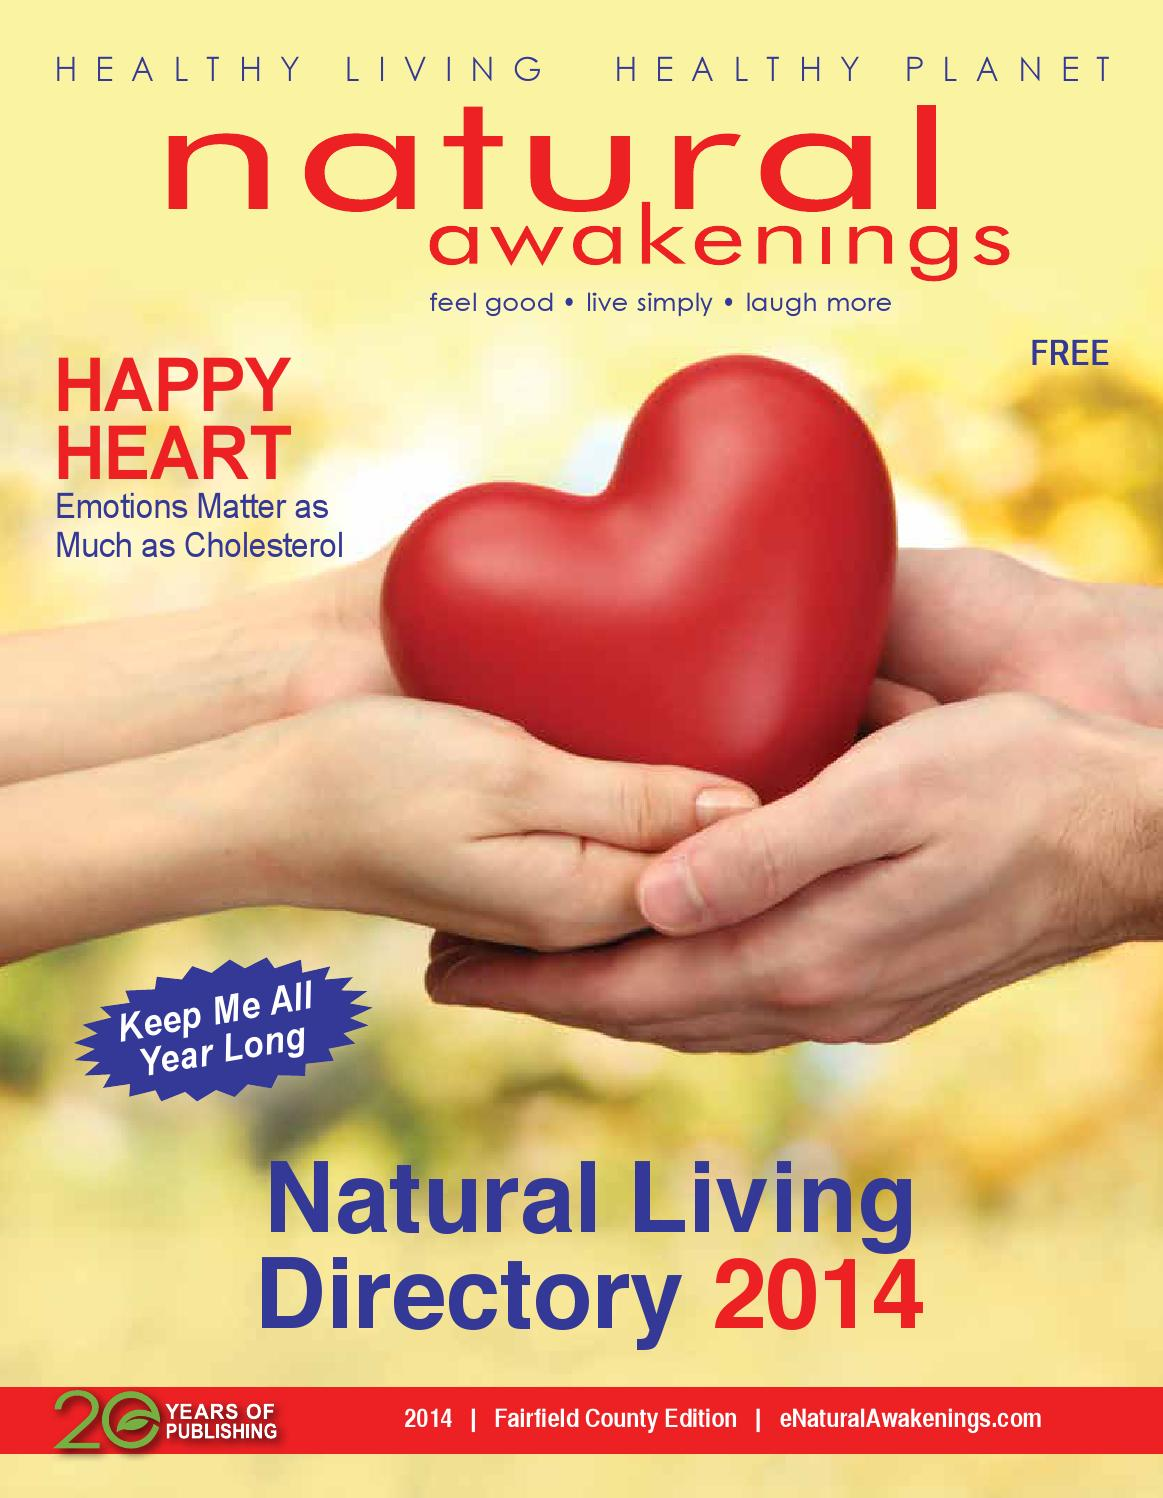 Natural Awakenings Fairfield County Natural Living Directory 2014 By